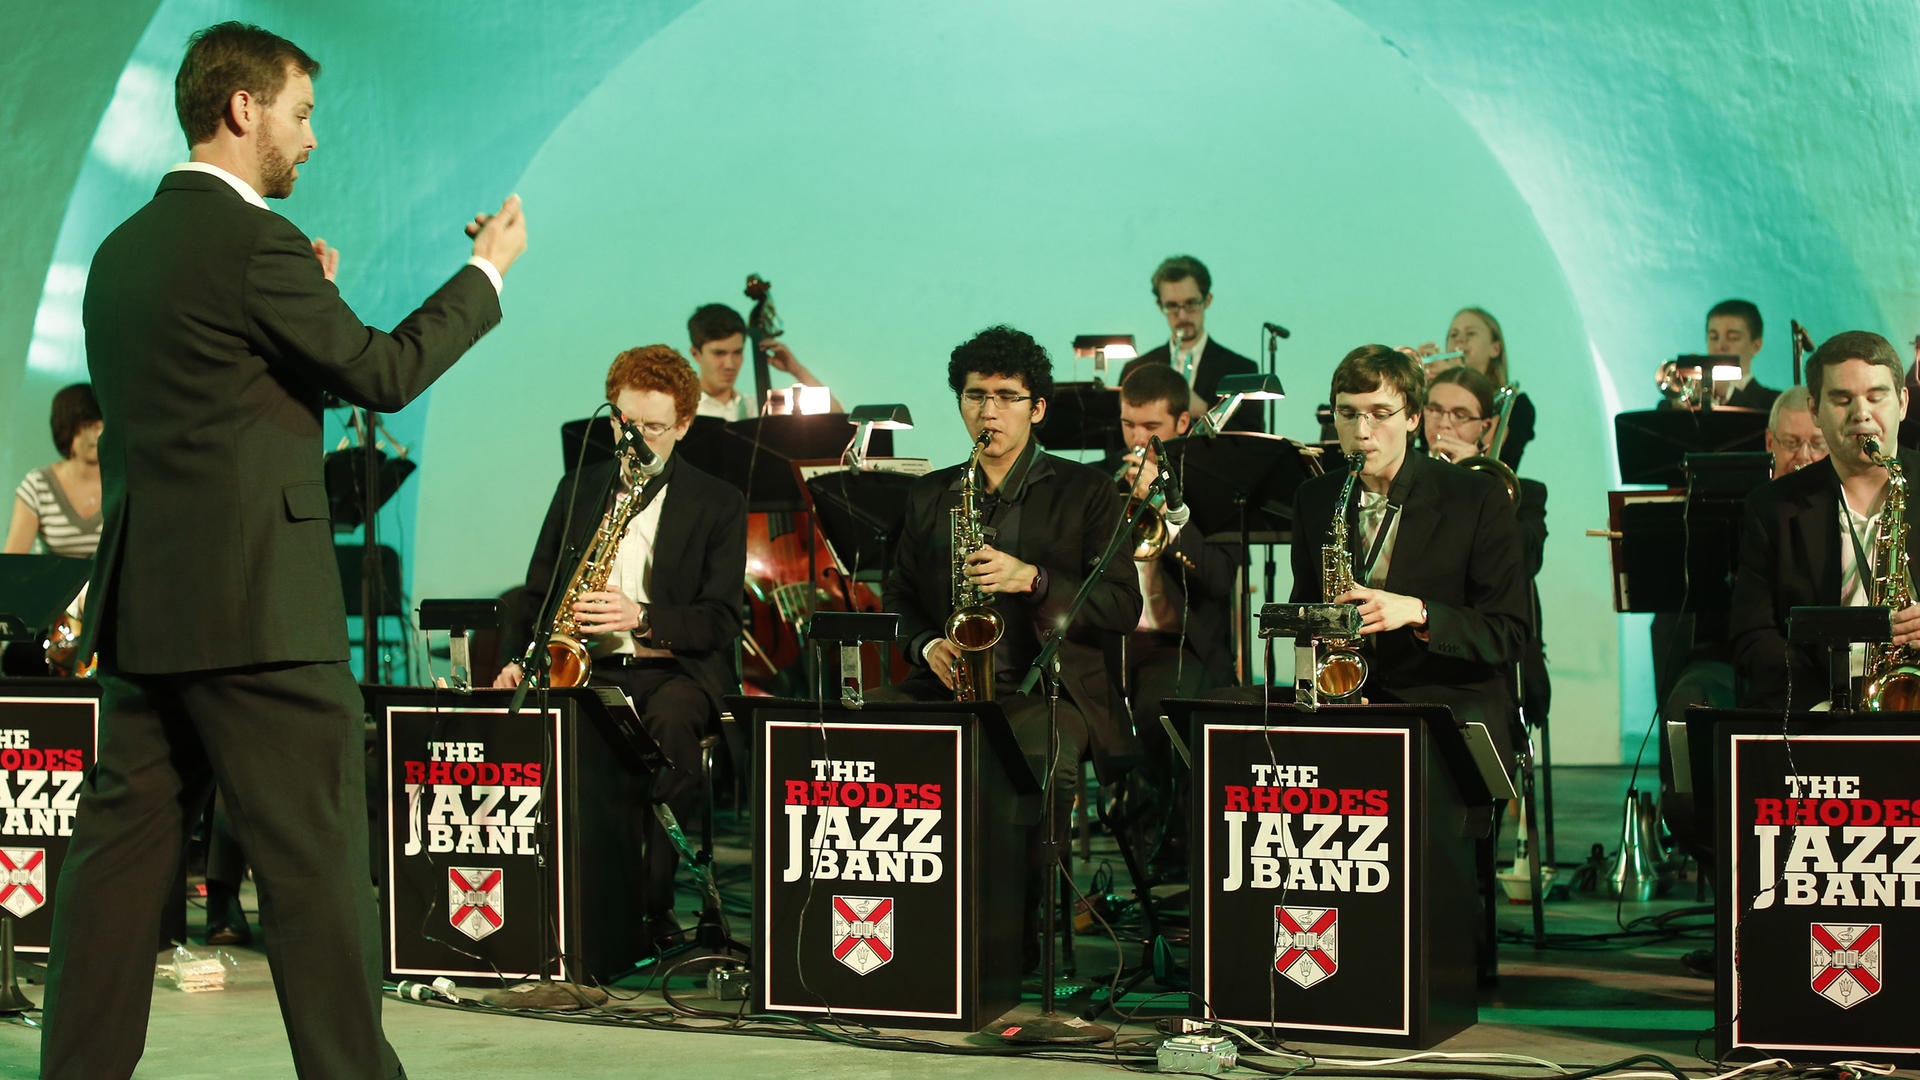 a jazz ensemble on stage